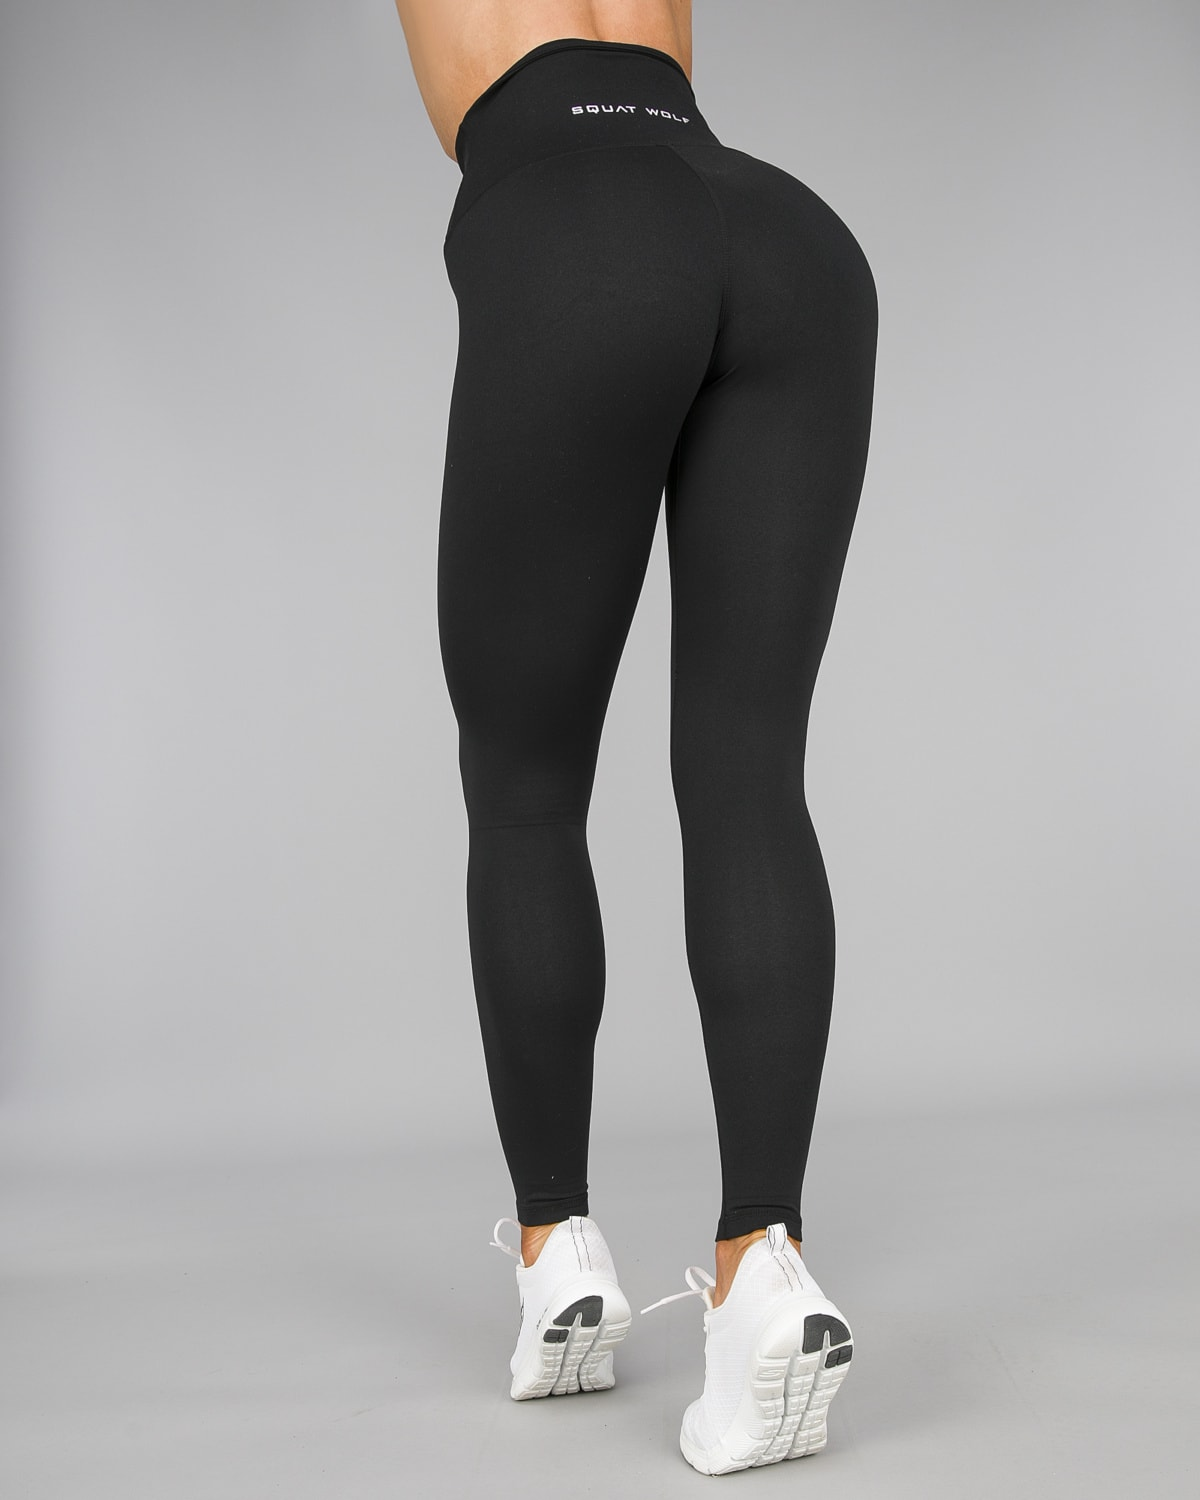 Squat Wolf – Hera Leggings – Black12